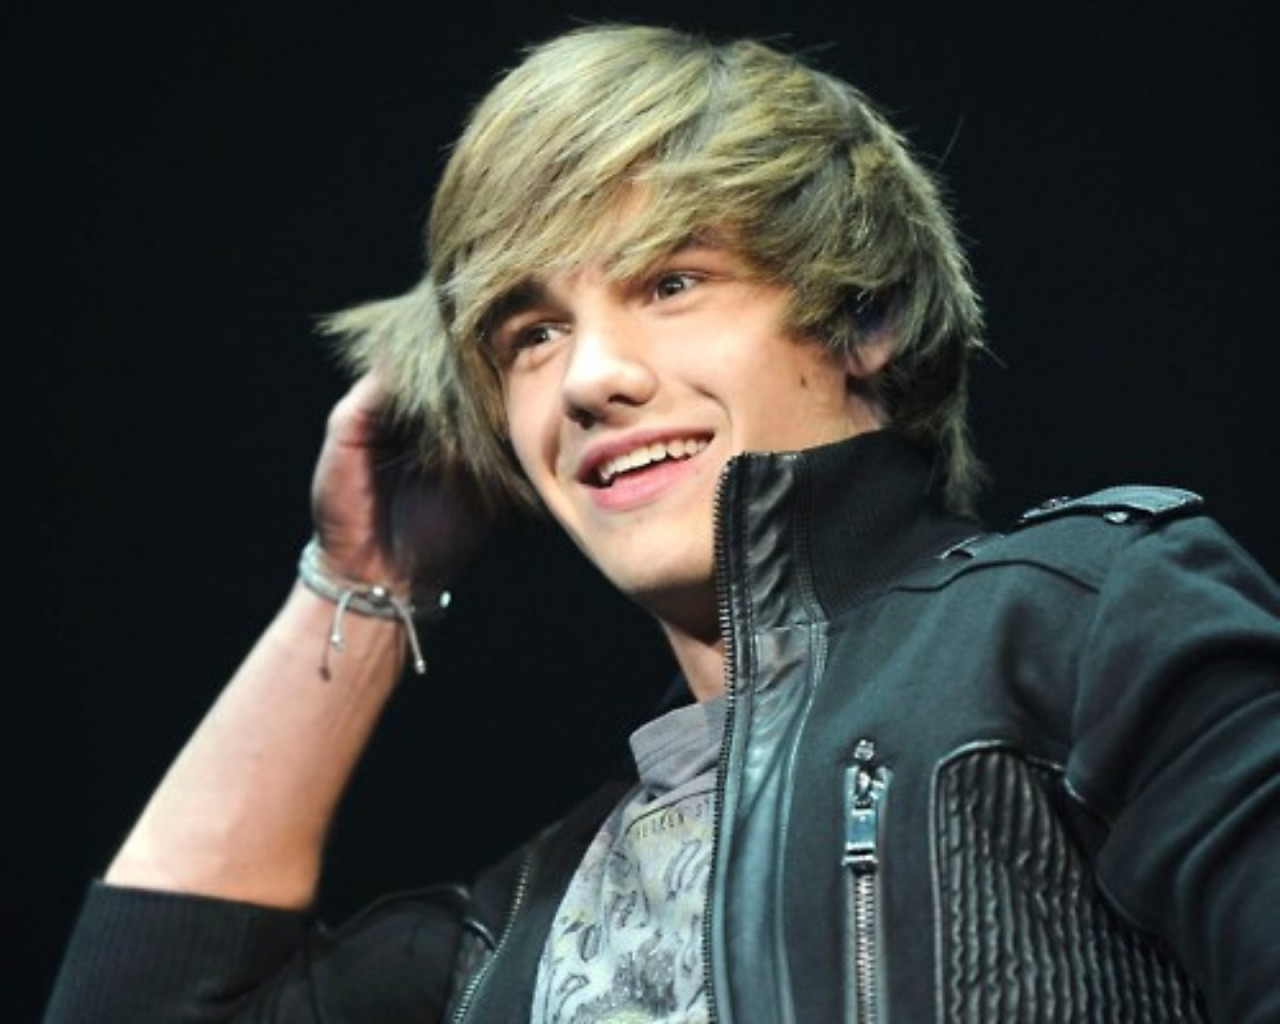 59 In Cm Definitely In Love 'cause One Direction: Liam Payne